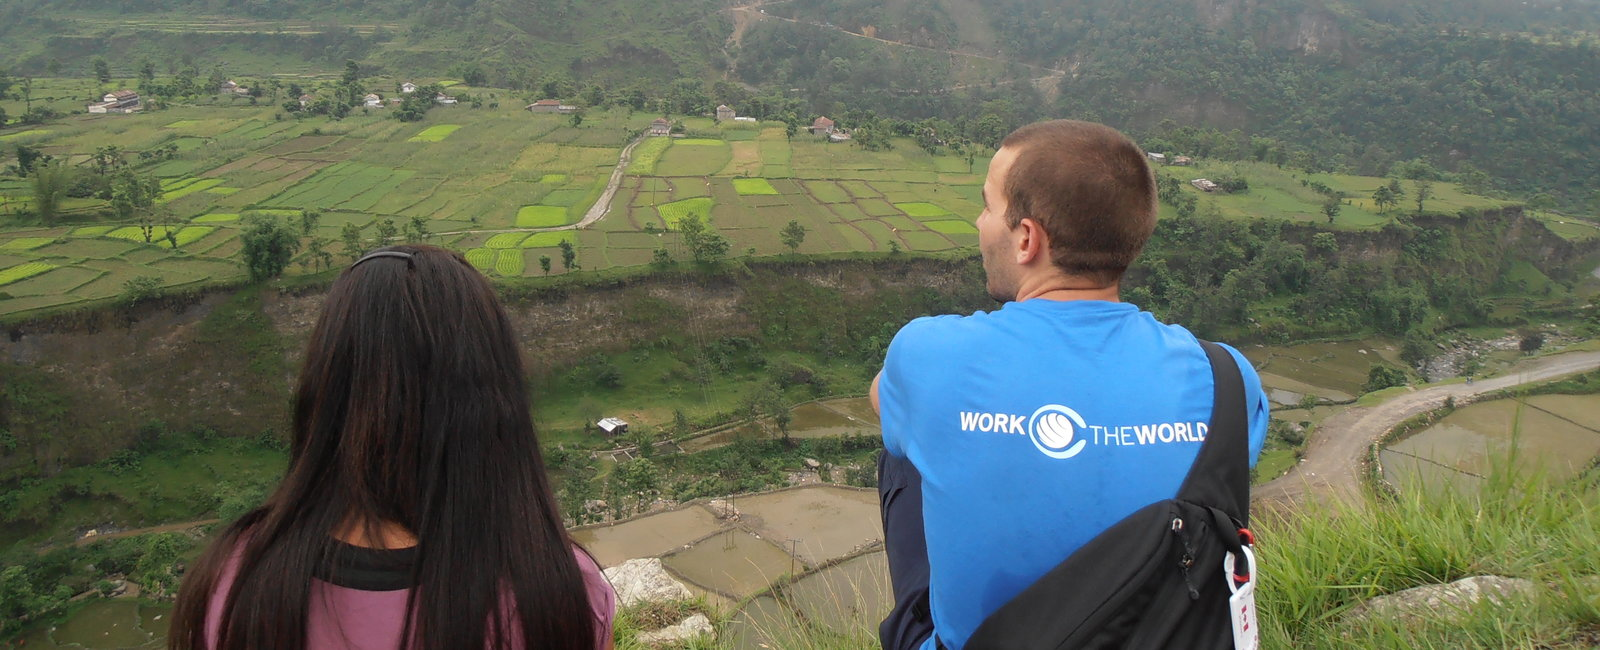 Sean Kennedy - Radiography Electives in Pokhara, Nepal